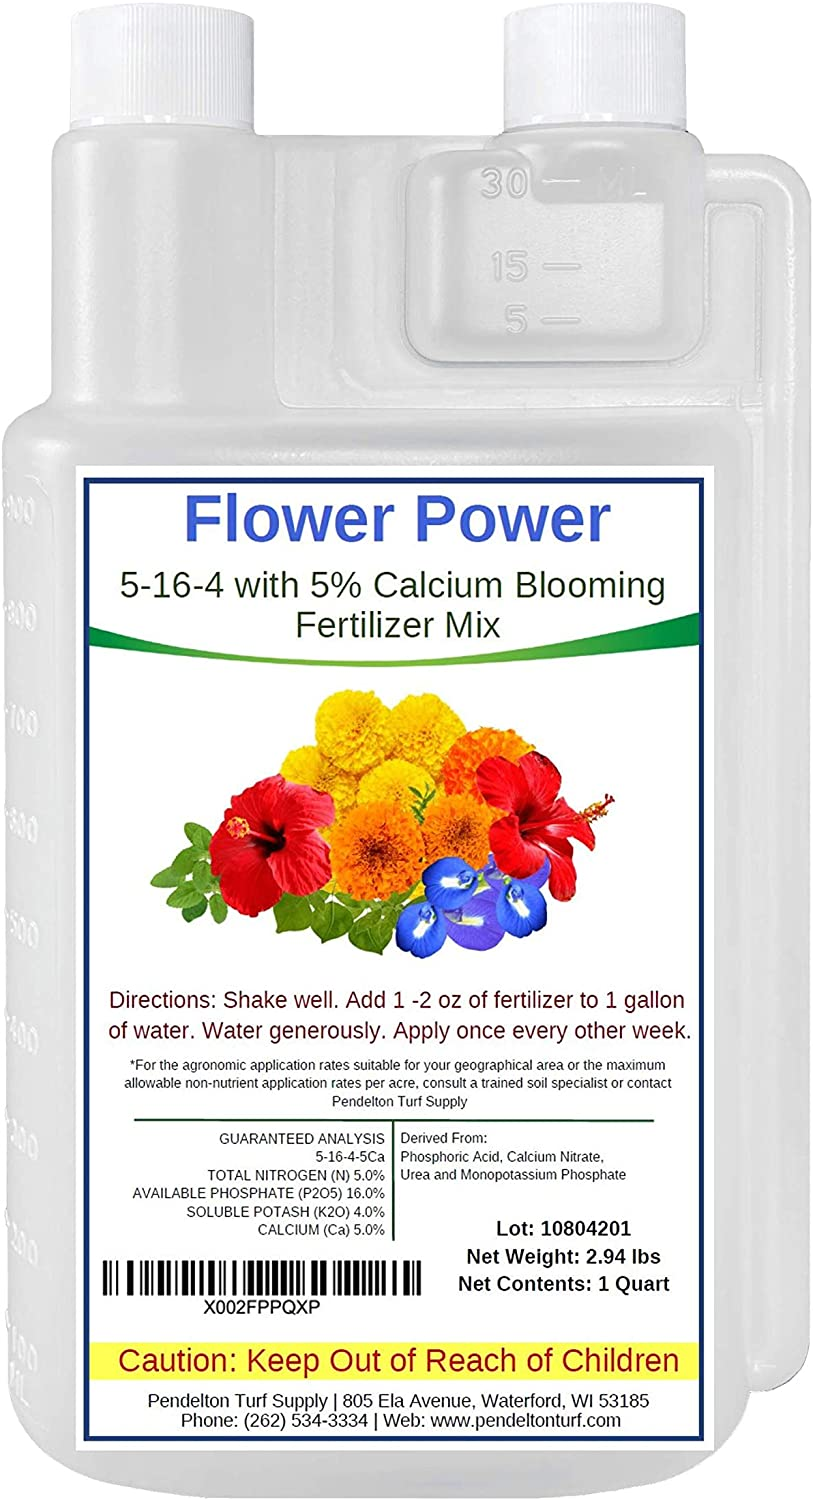 Flower Power 5-16-4 with 5% Added Calcium | All Natural Liquid Blooming Fertilizer Concentrate | Indoor and Outdoor Use | NPK Food for Flowers, Plants, Gardens, Trees, Grasses, Shrubs & More (32 oz)